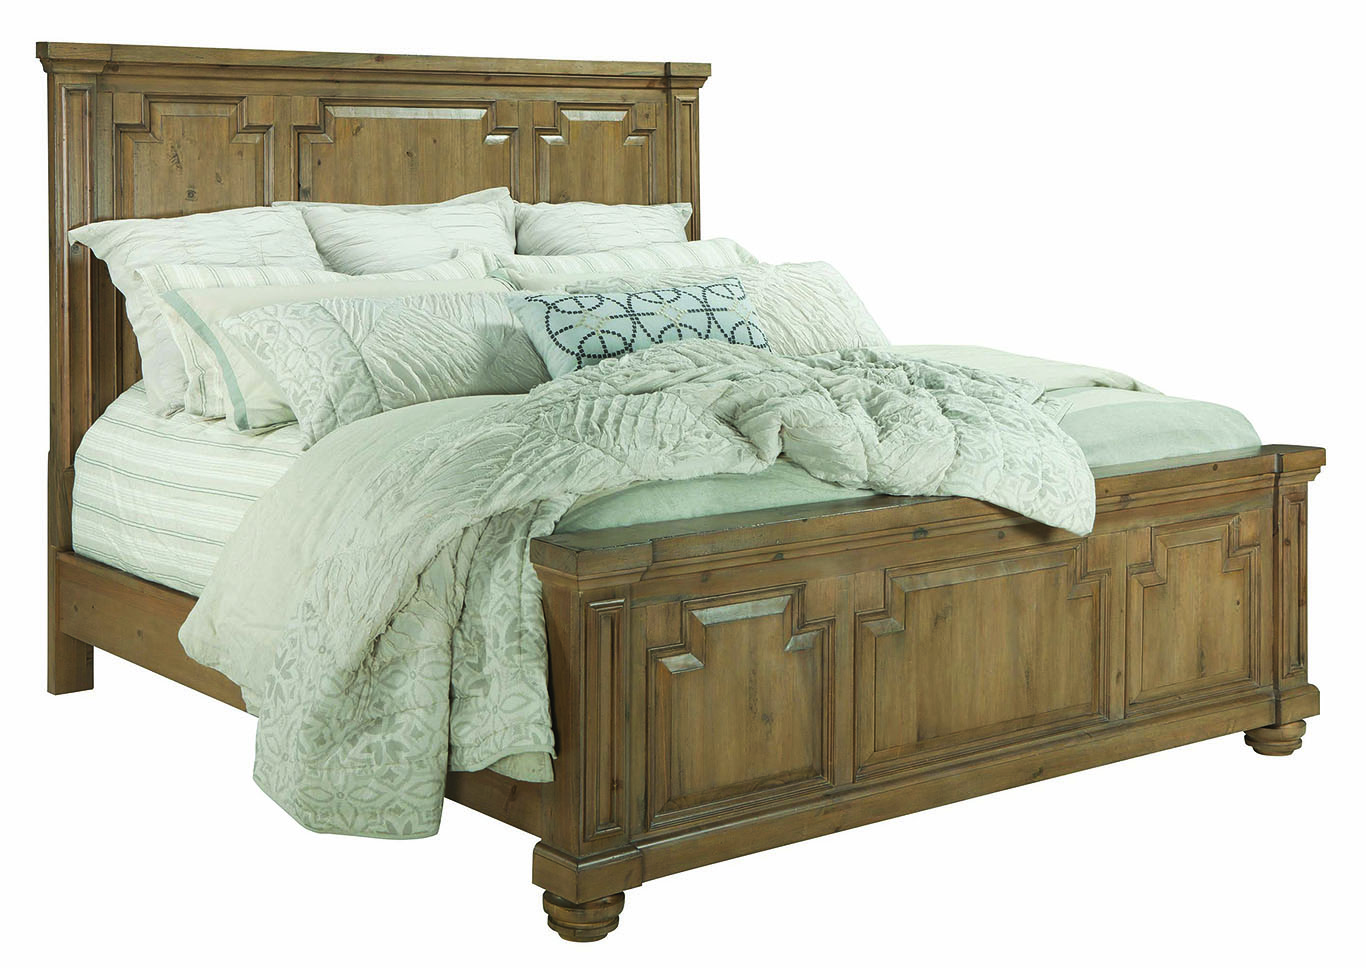 Florence Rustic Smoke King 4 Piece Bedroom Set,Coaster Furniture